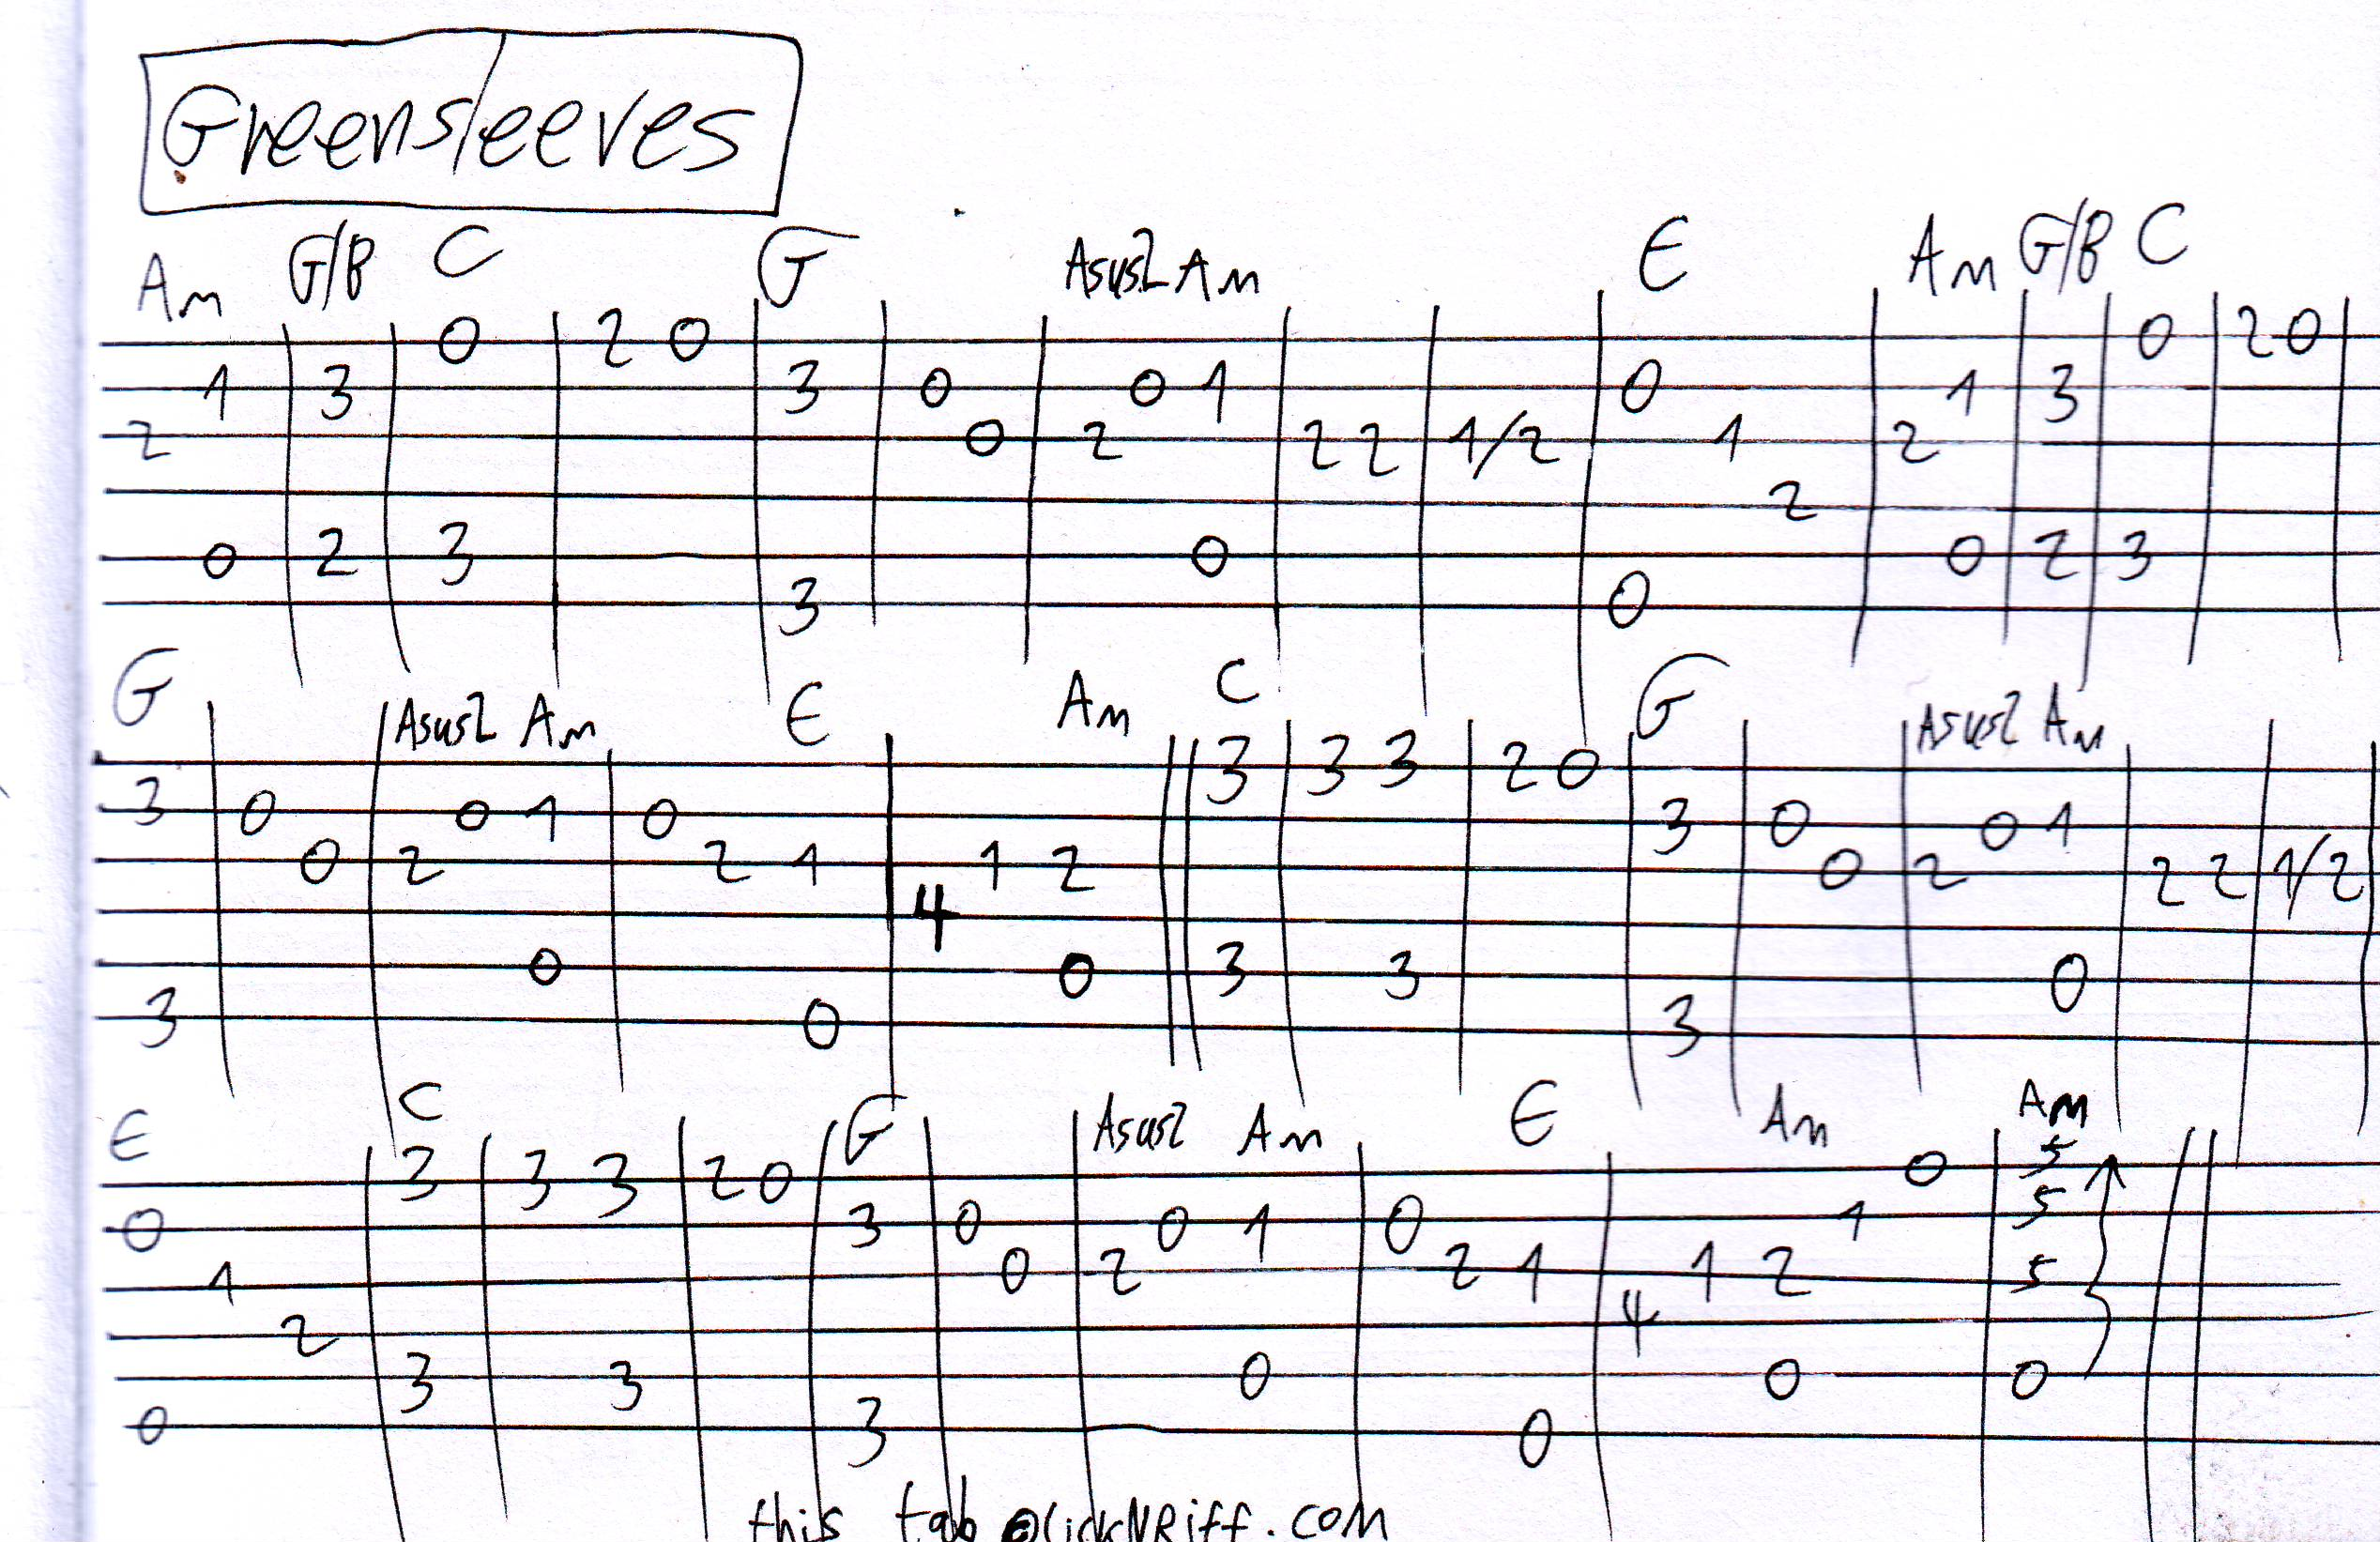 Pics Photos - Greensleeves Guitar Tab